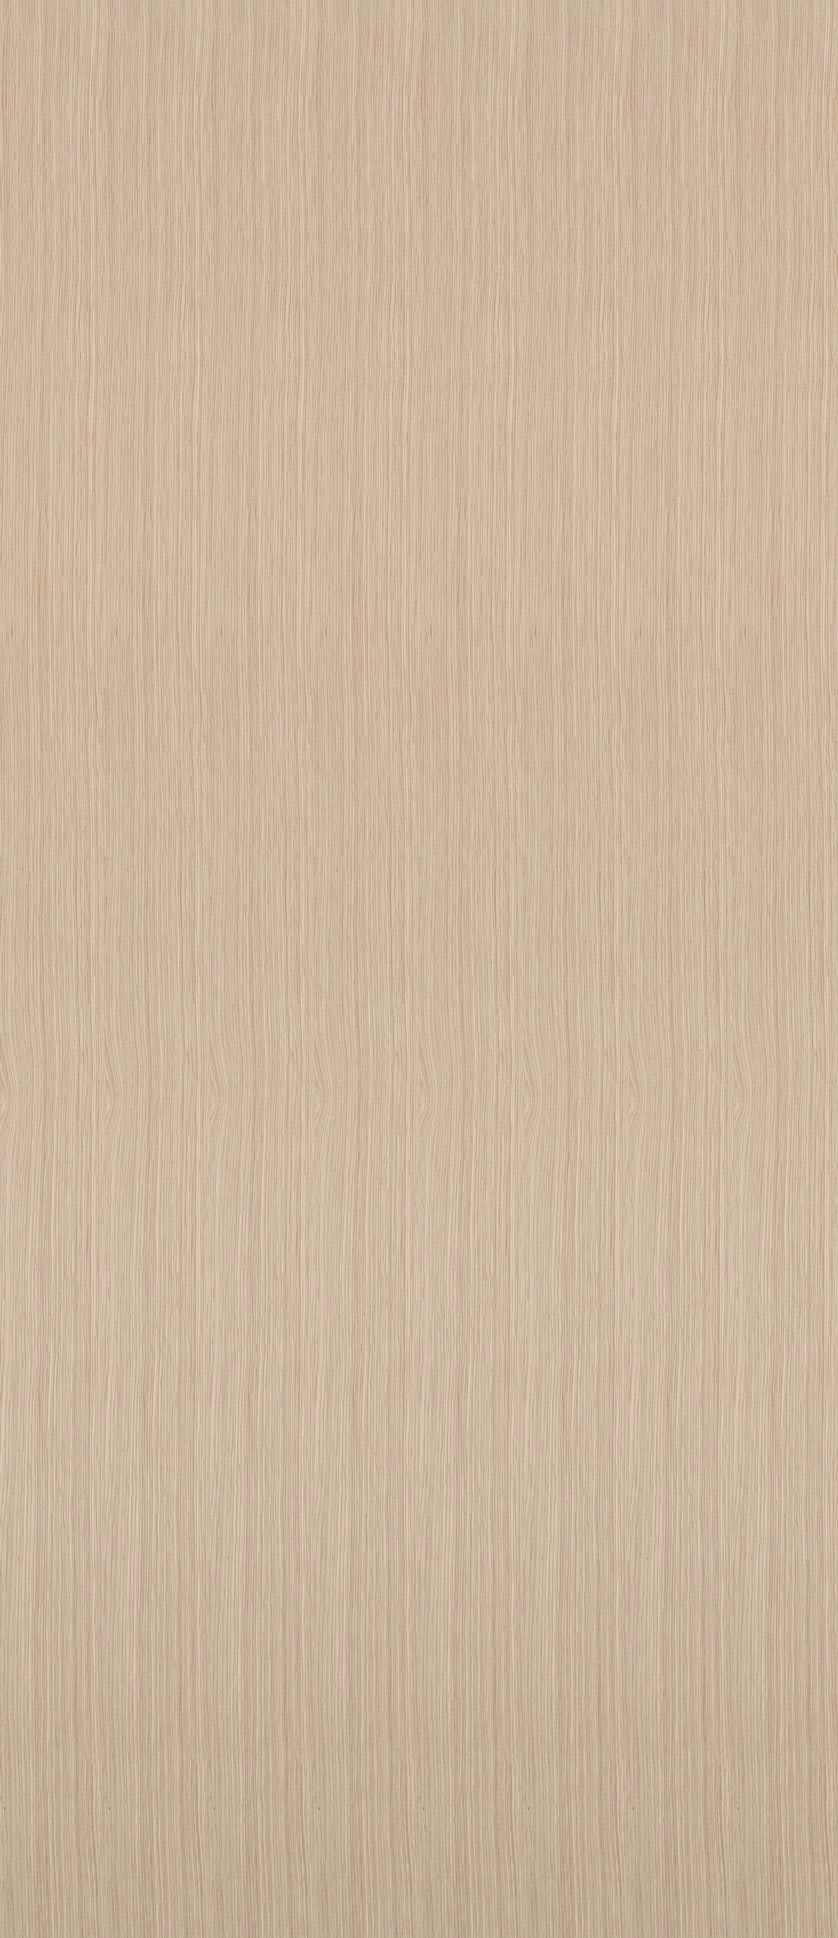 Oak American White Wood Veneer Dooge Veneers